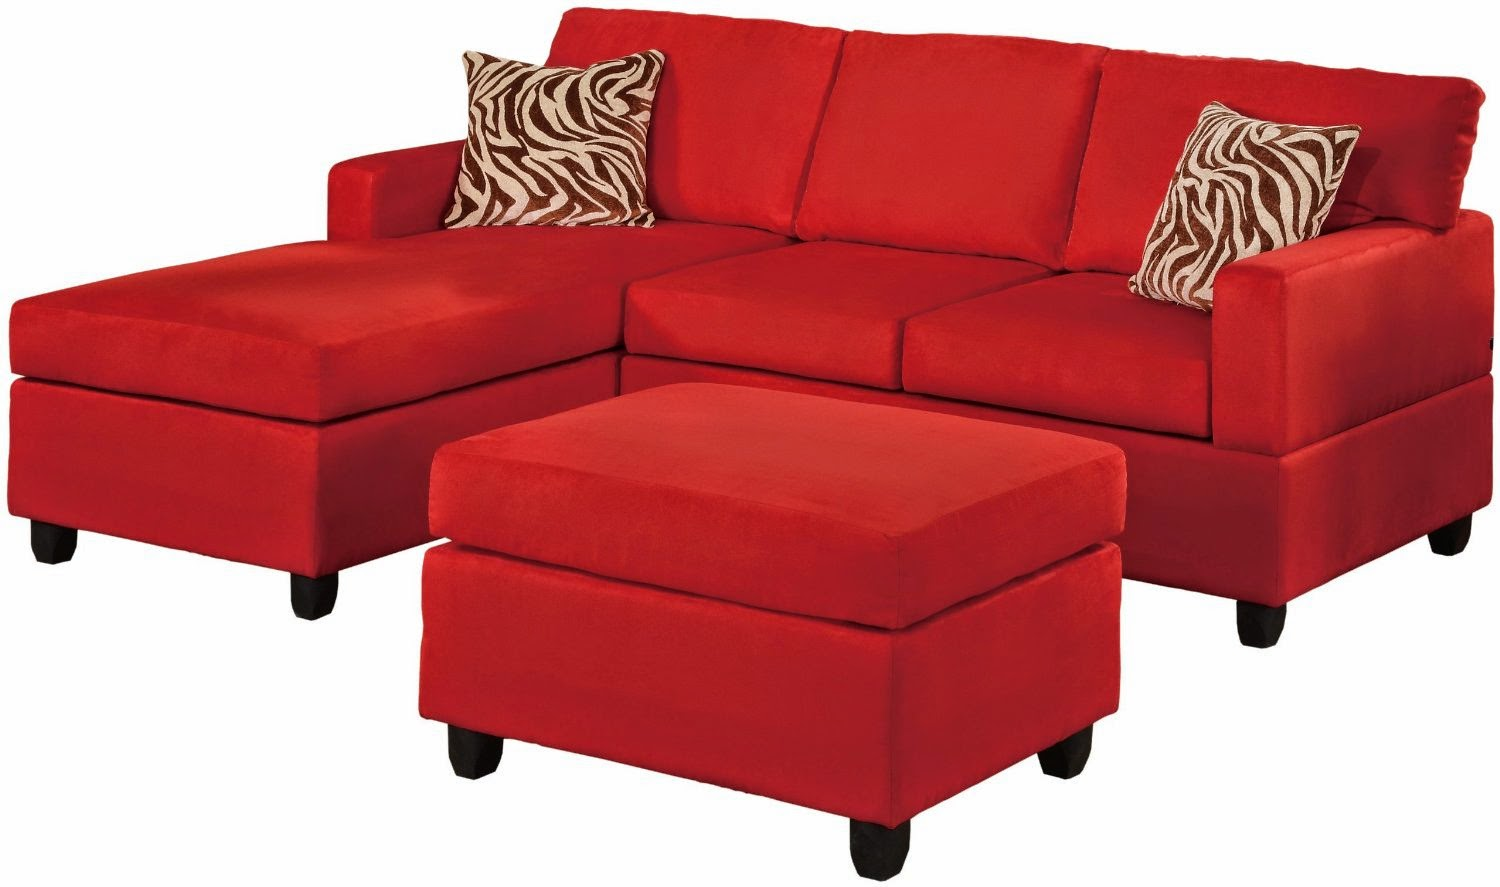 Bobkona Sectional Sofa Embly Instructions Childrens Bed With Underneath Red Couch